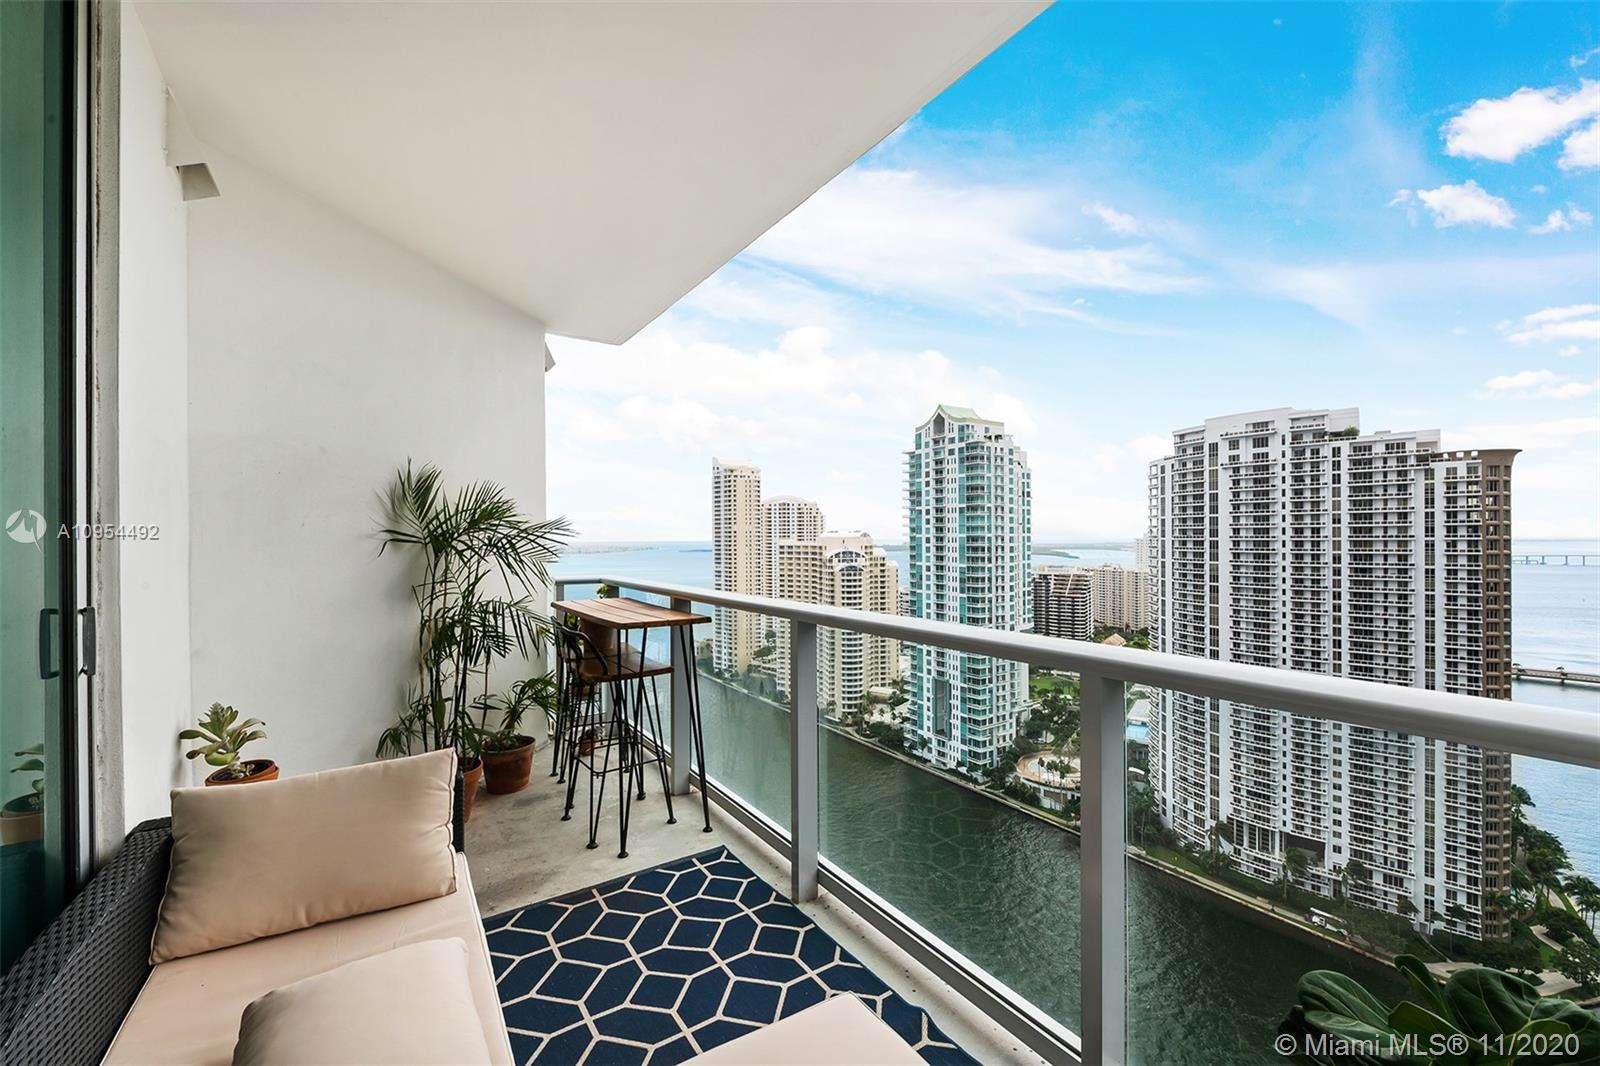 AMAZING BISCAYNE BAY, OCEAN & RIVER VIEWS FROM THIS 2 BEDROOM, 2 BATHROOM UNIT WITH SOUTHEASTERN EXP